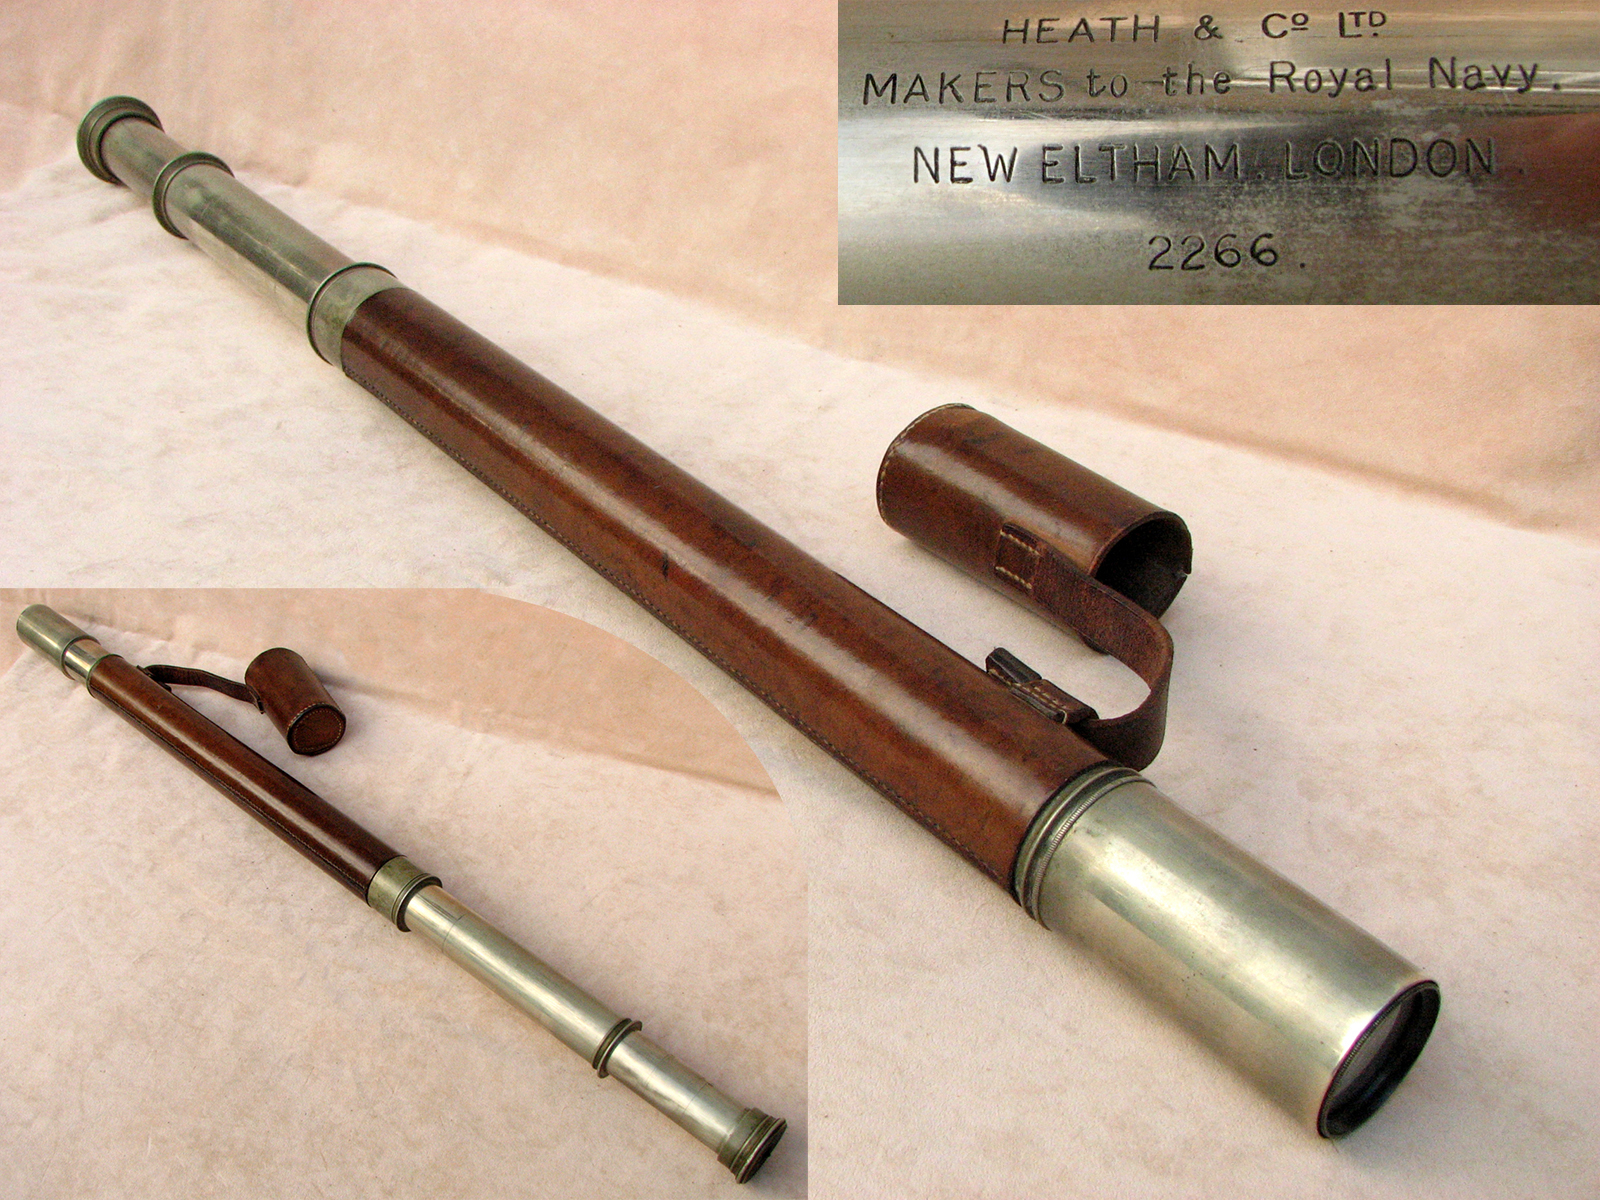 Officer of the Watch Naval telescope signed, 'HEATH & Co Ltd, Makers to the Royal Navy